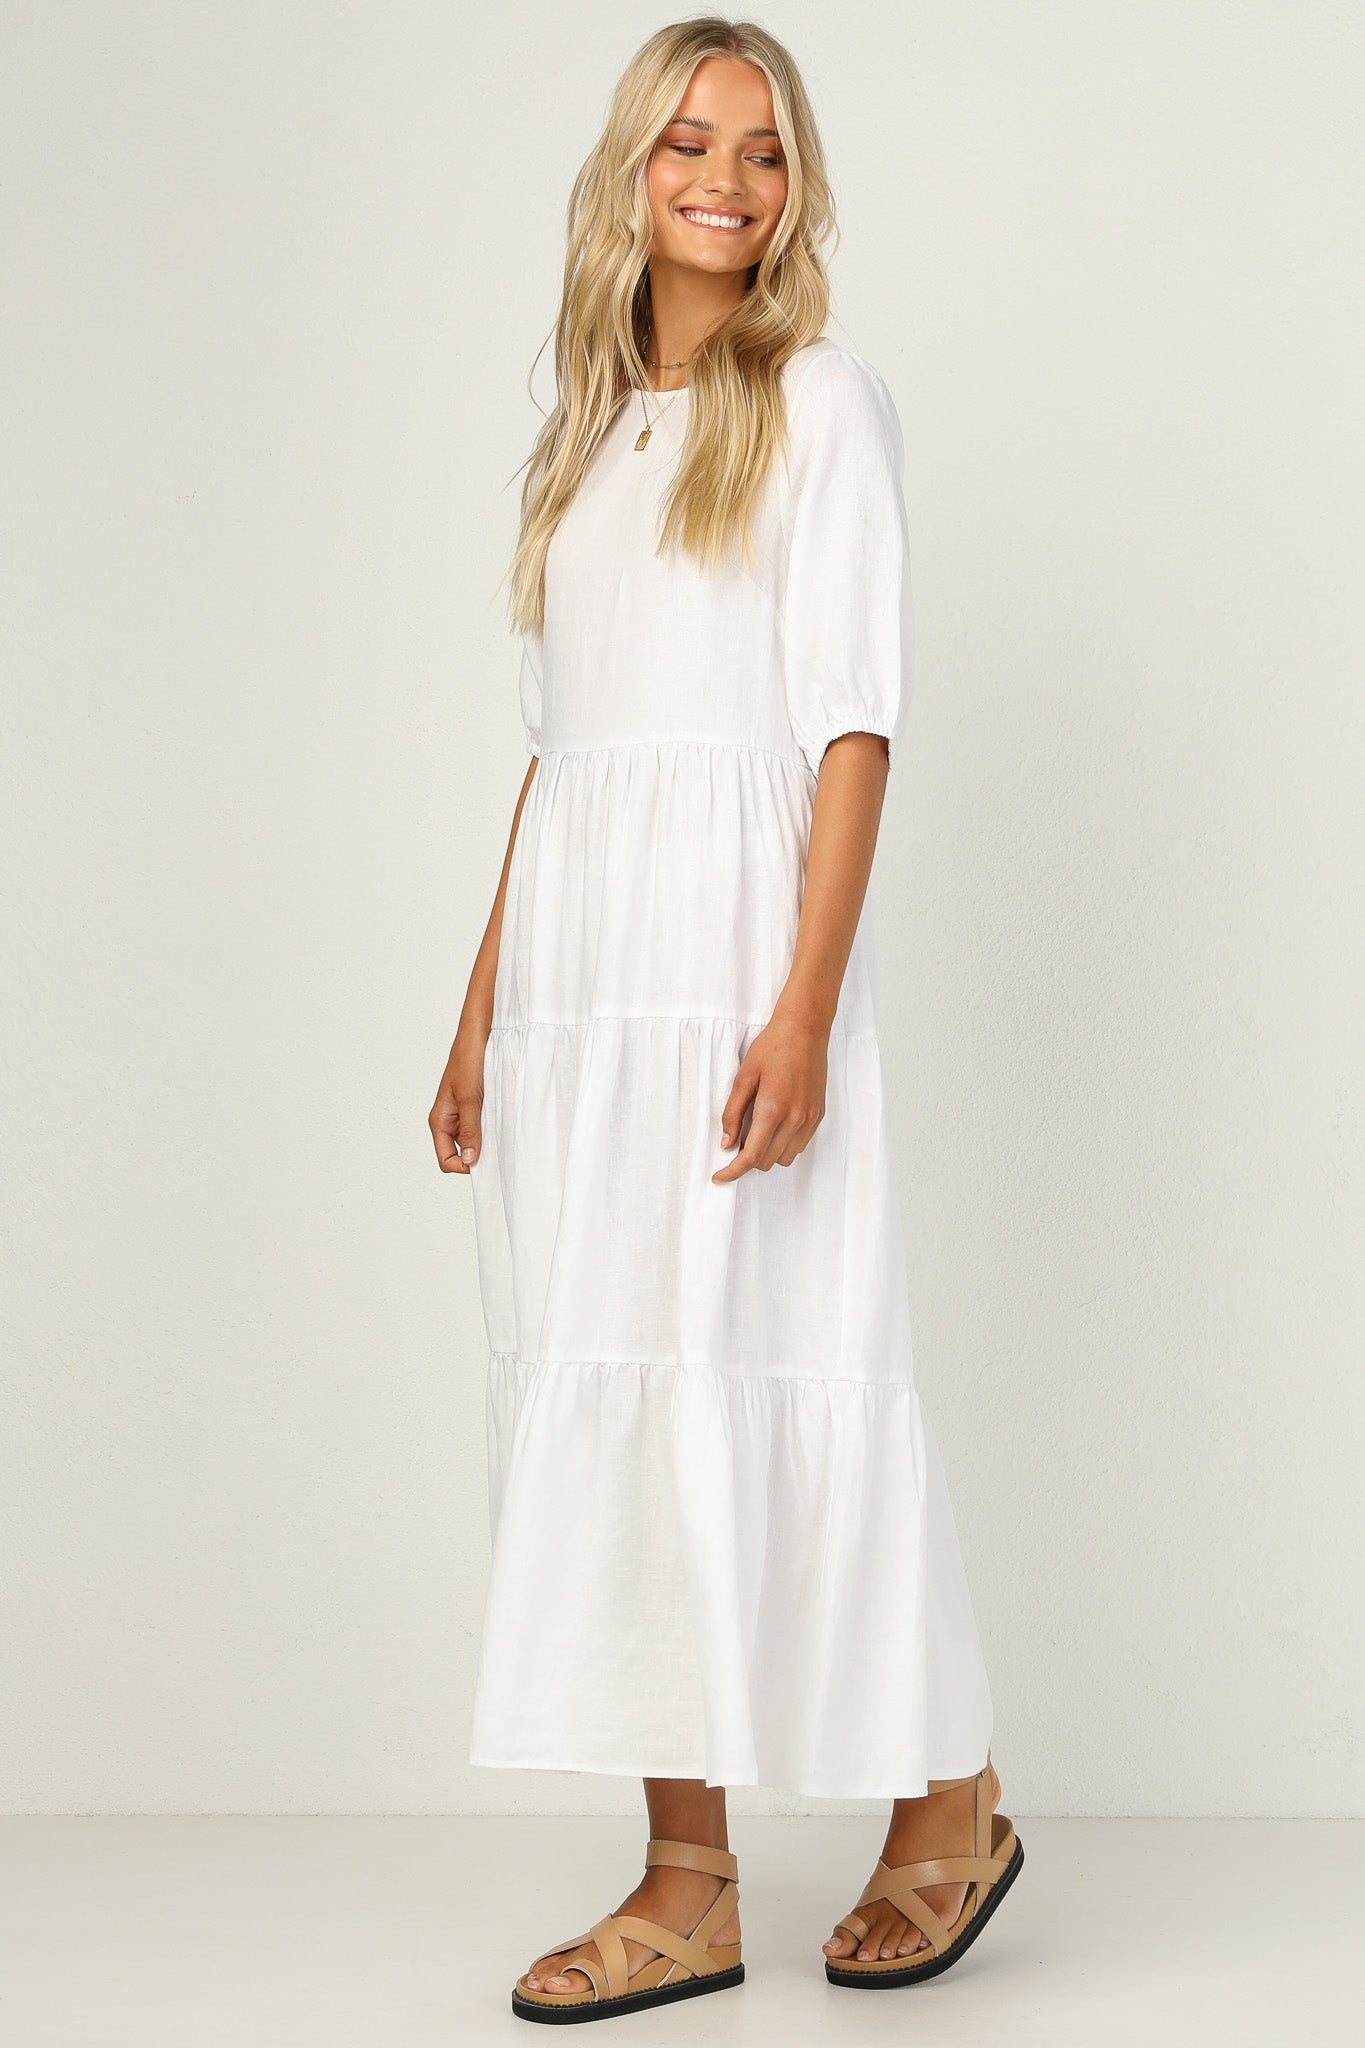 Autumn Dress (White)